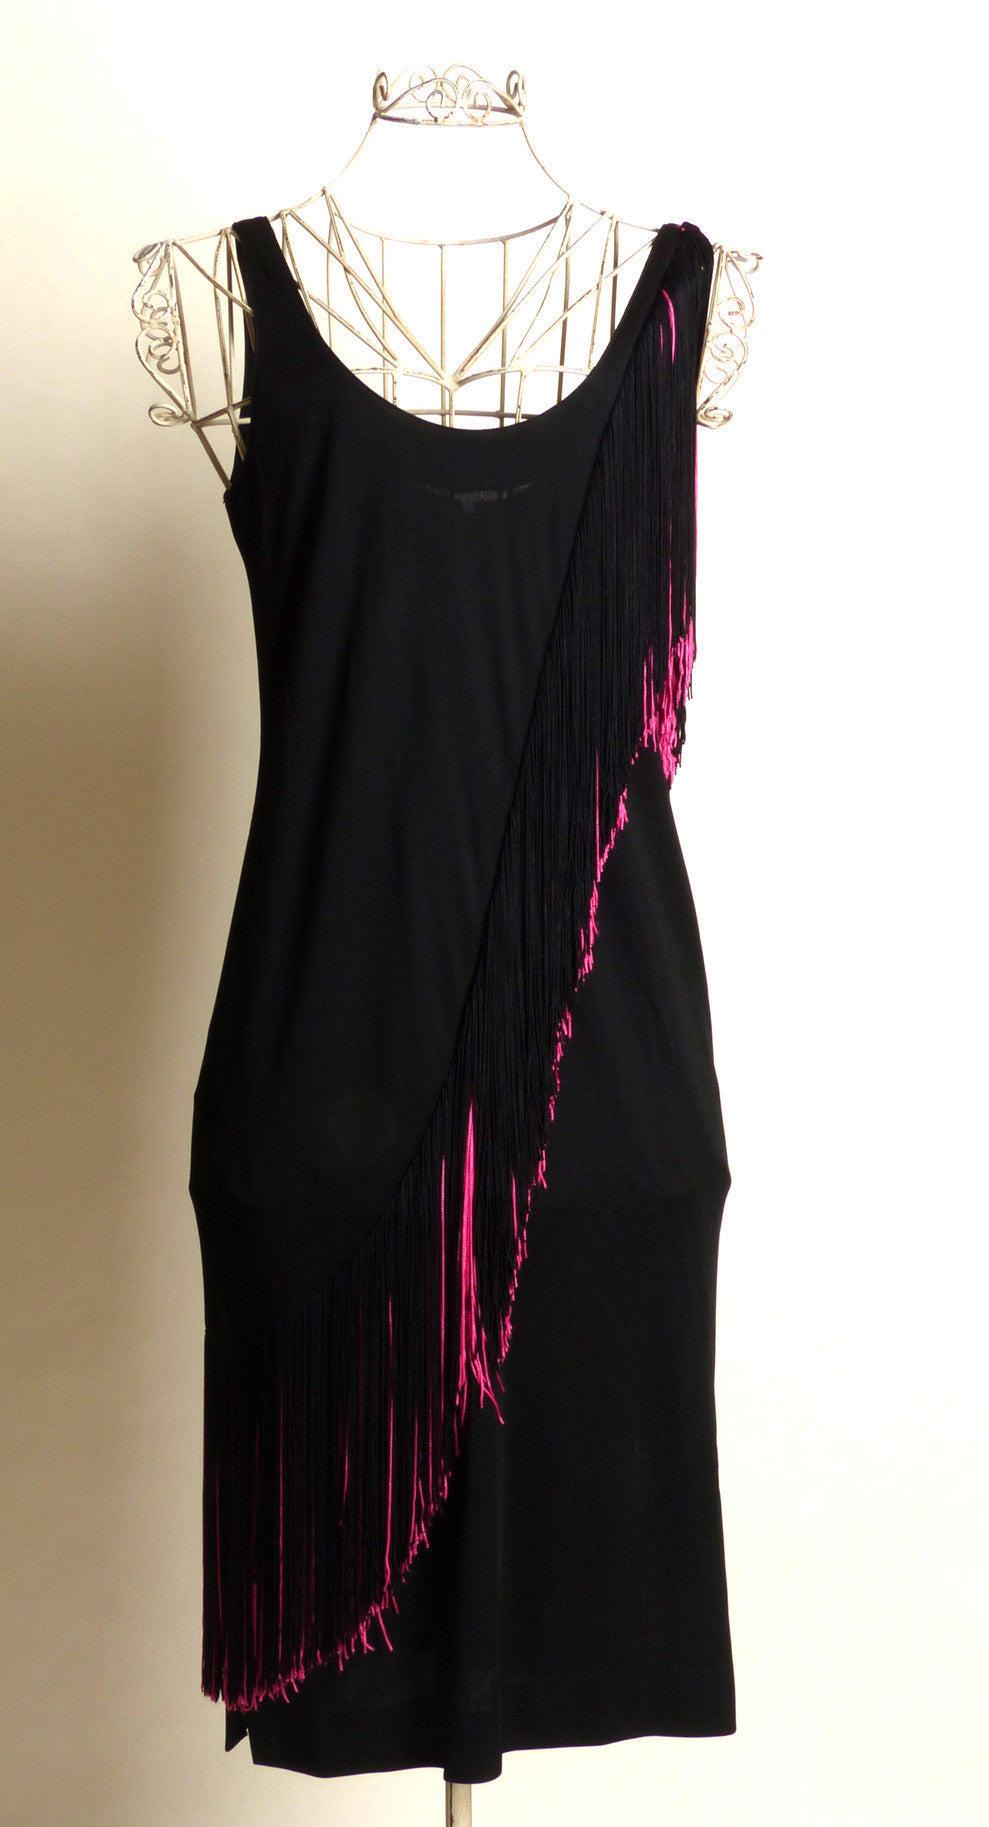 Circa 1970s/1980s Lilli Diamond of California Black and Pink Fringed Dress